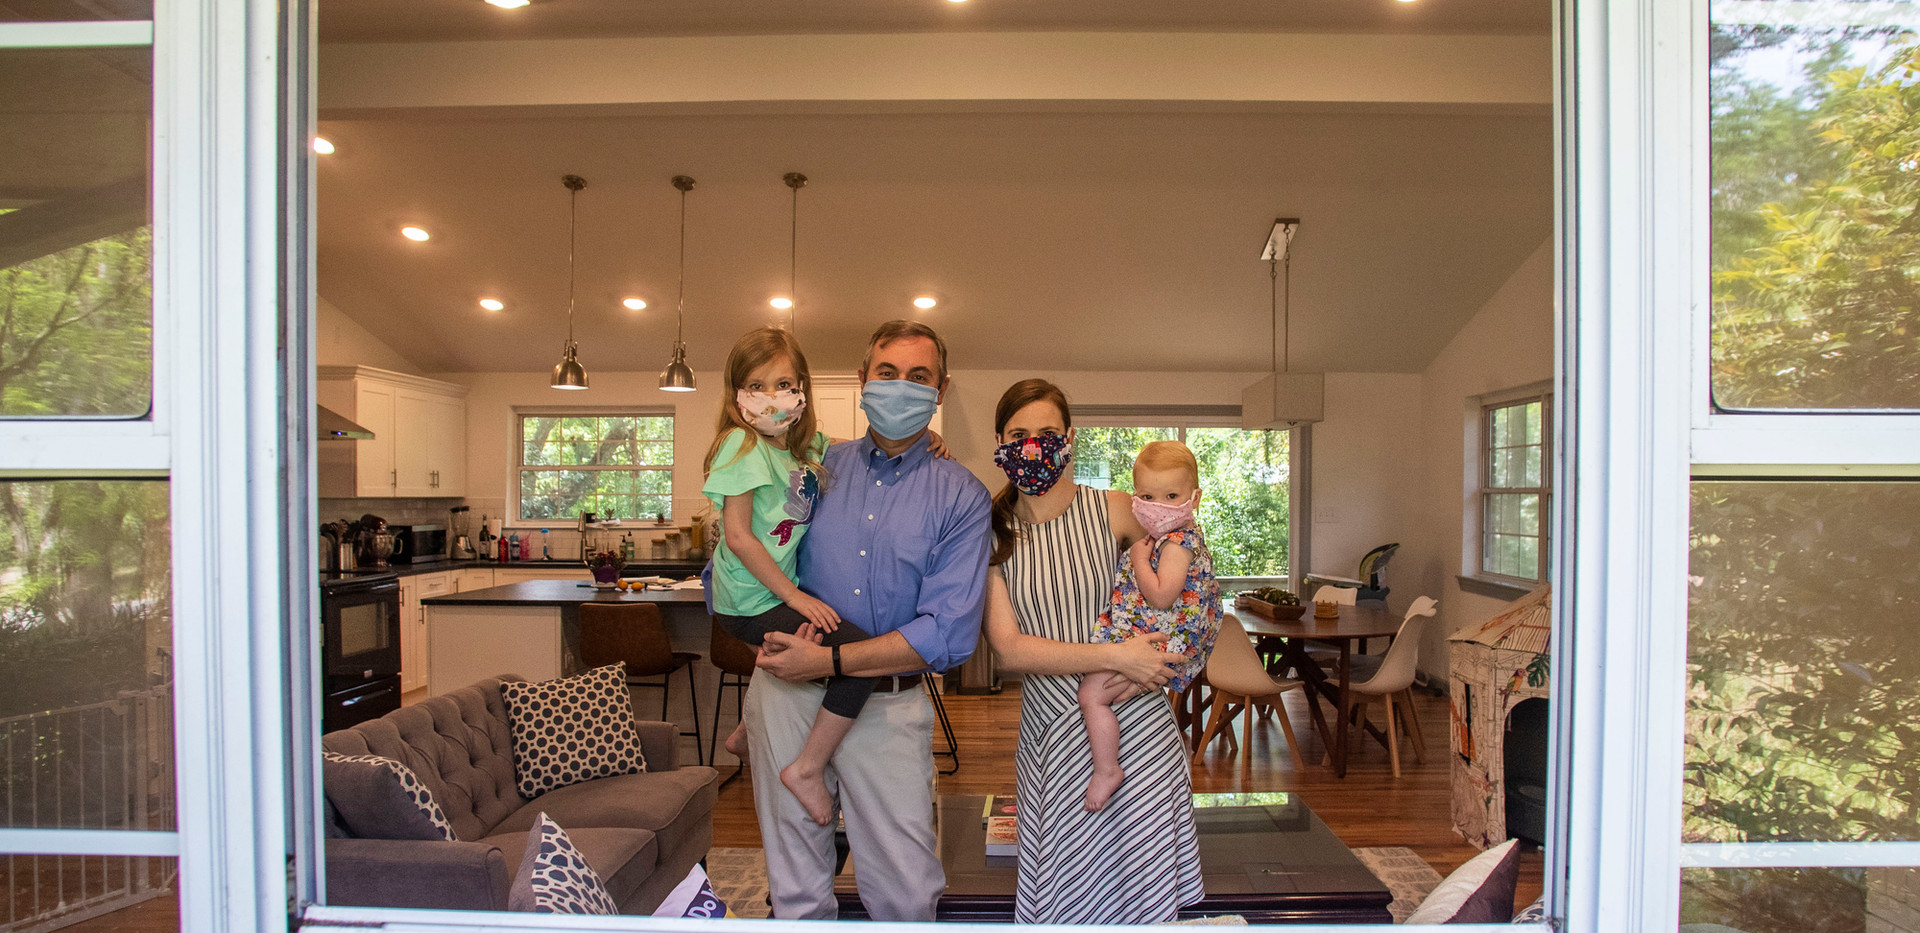 Leon County Commissioner Rick Minor, left, and his wife Jessica Lowe-Minor hold their two daughters Madeline, 6, and Charlotte, 1, as they wear masks that a friend made for them. When any of them leave the house, they ensure they are protected with their cloth face masks.